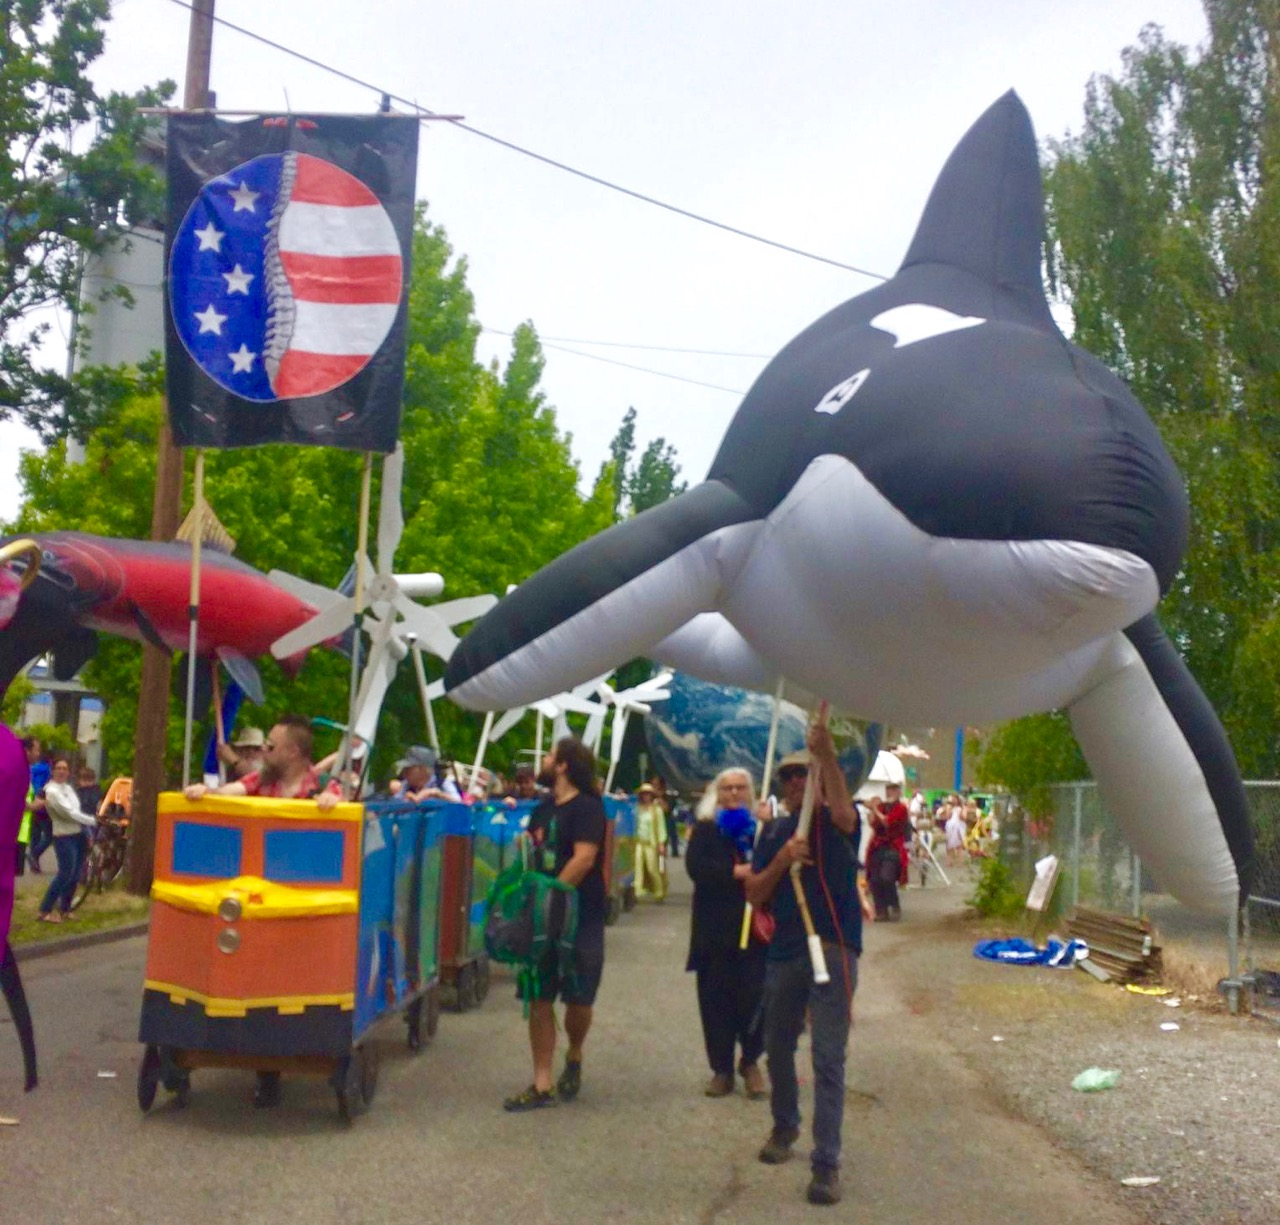 Orca_and_Backbone_flag_with_ecotopia_train_in_solstice_parade_2017.jpg